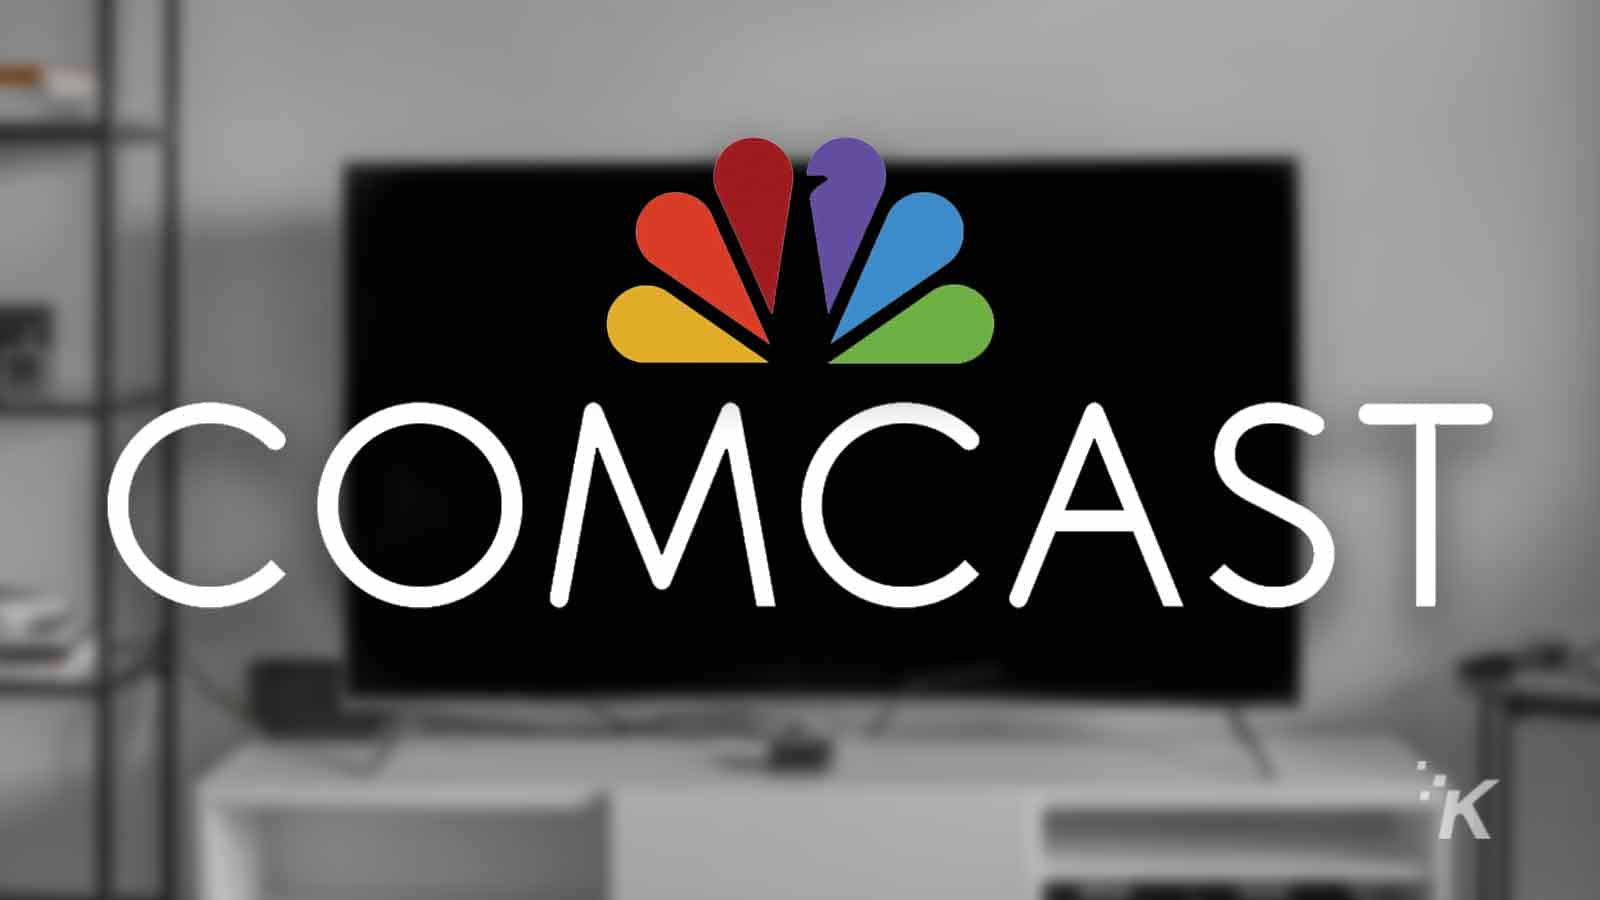 comcast logo with blurred tv background